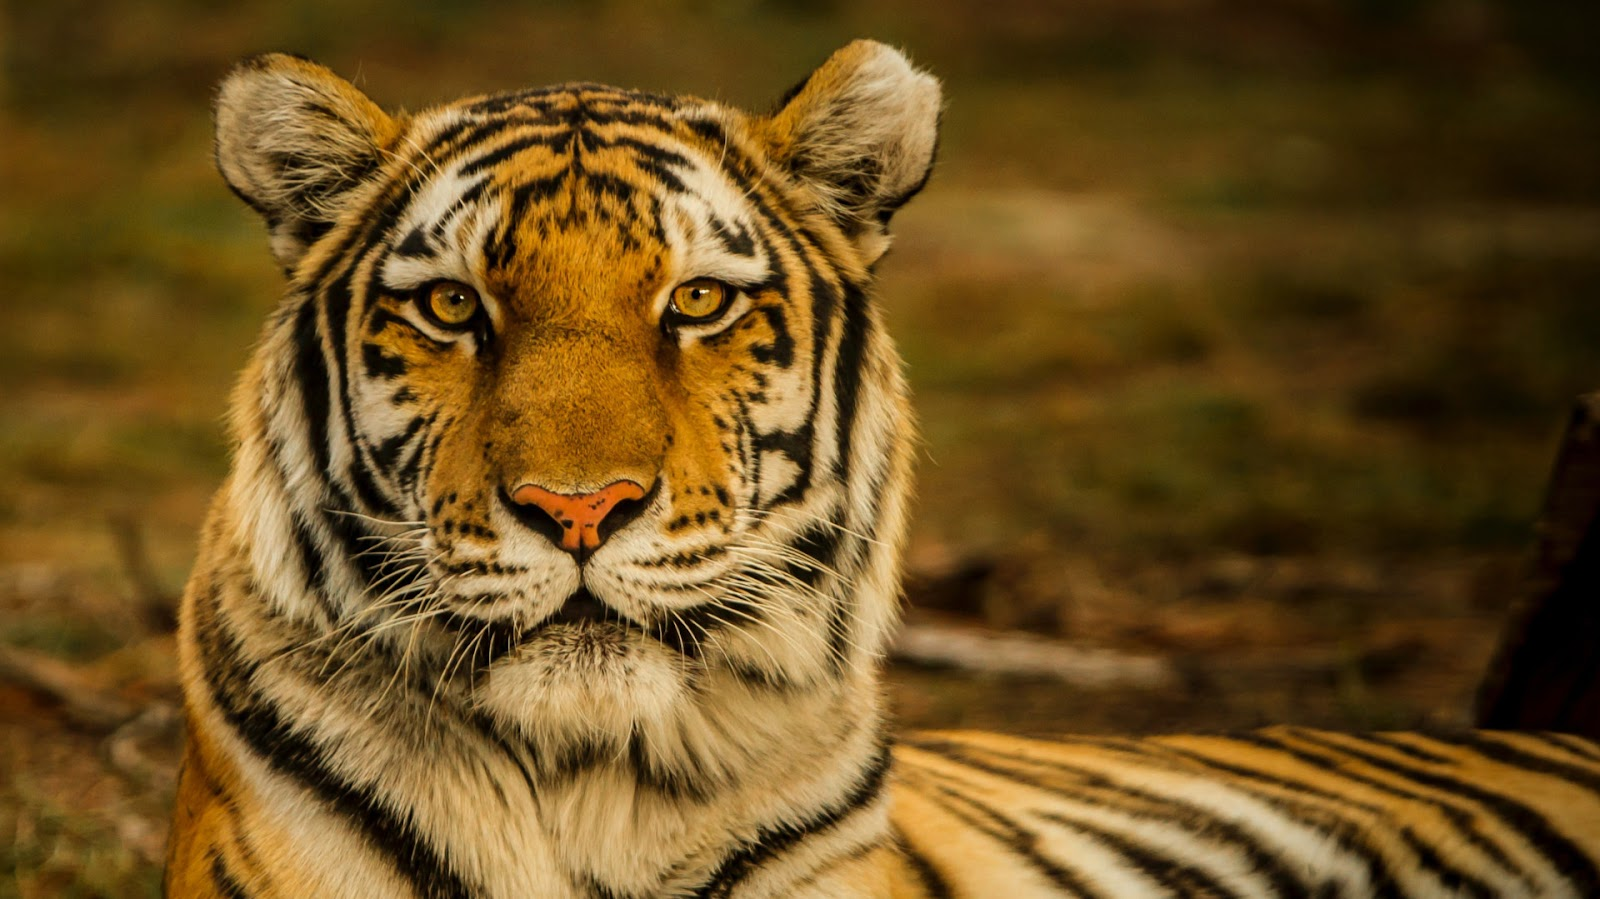 A regal tiger stares into the camera, wanting to know more about the Tiger King.